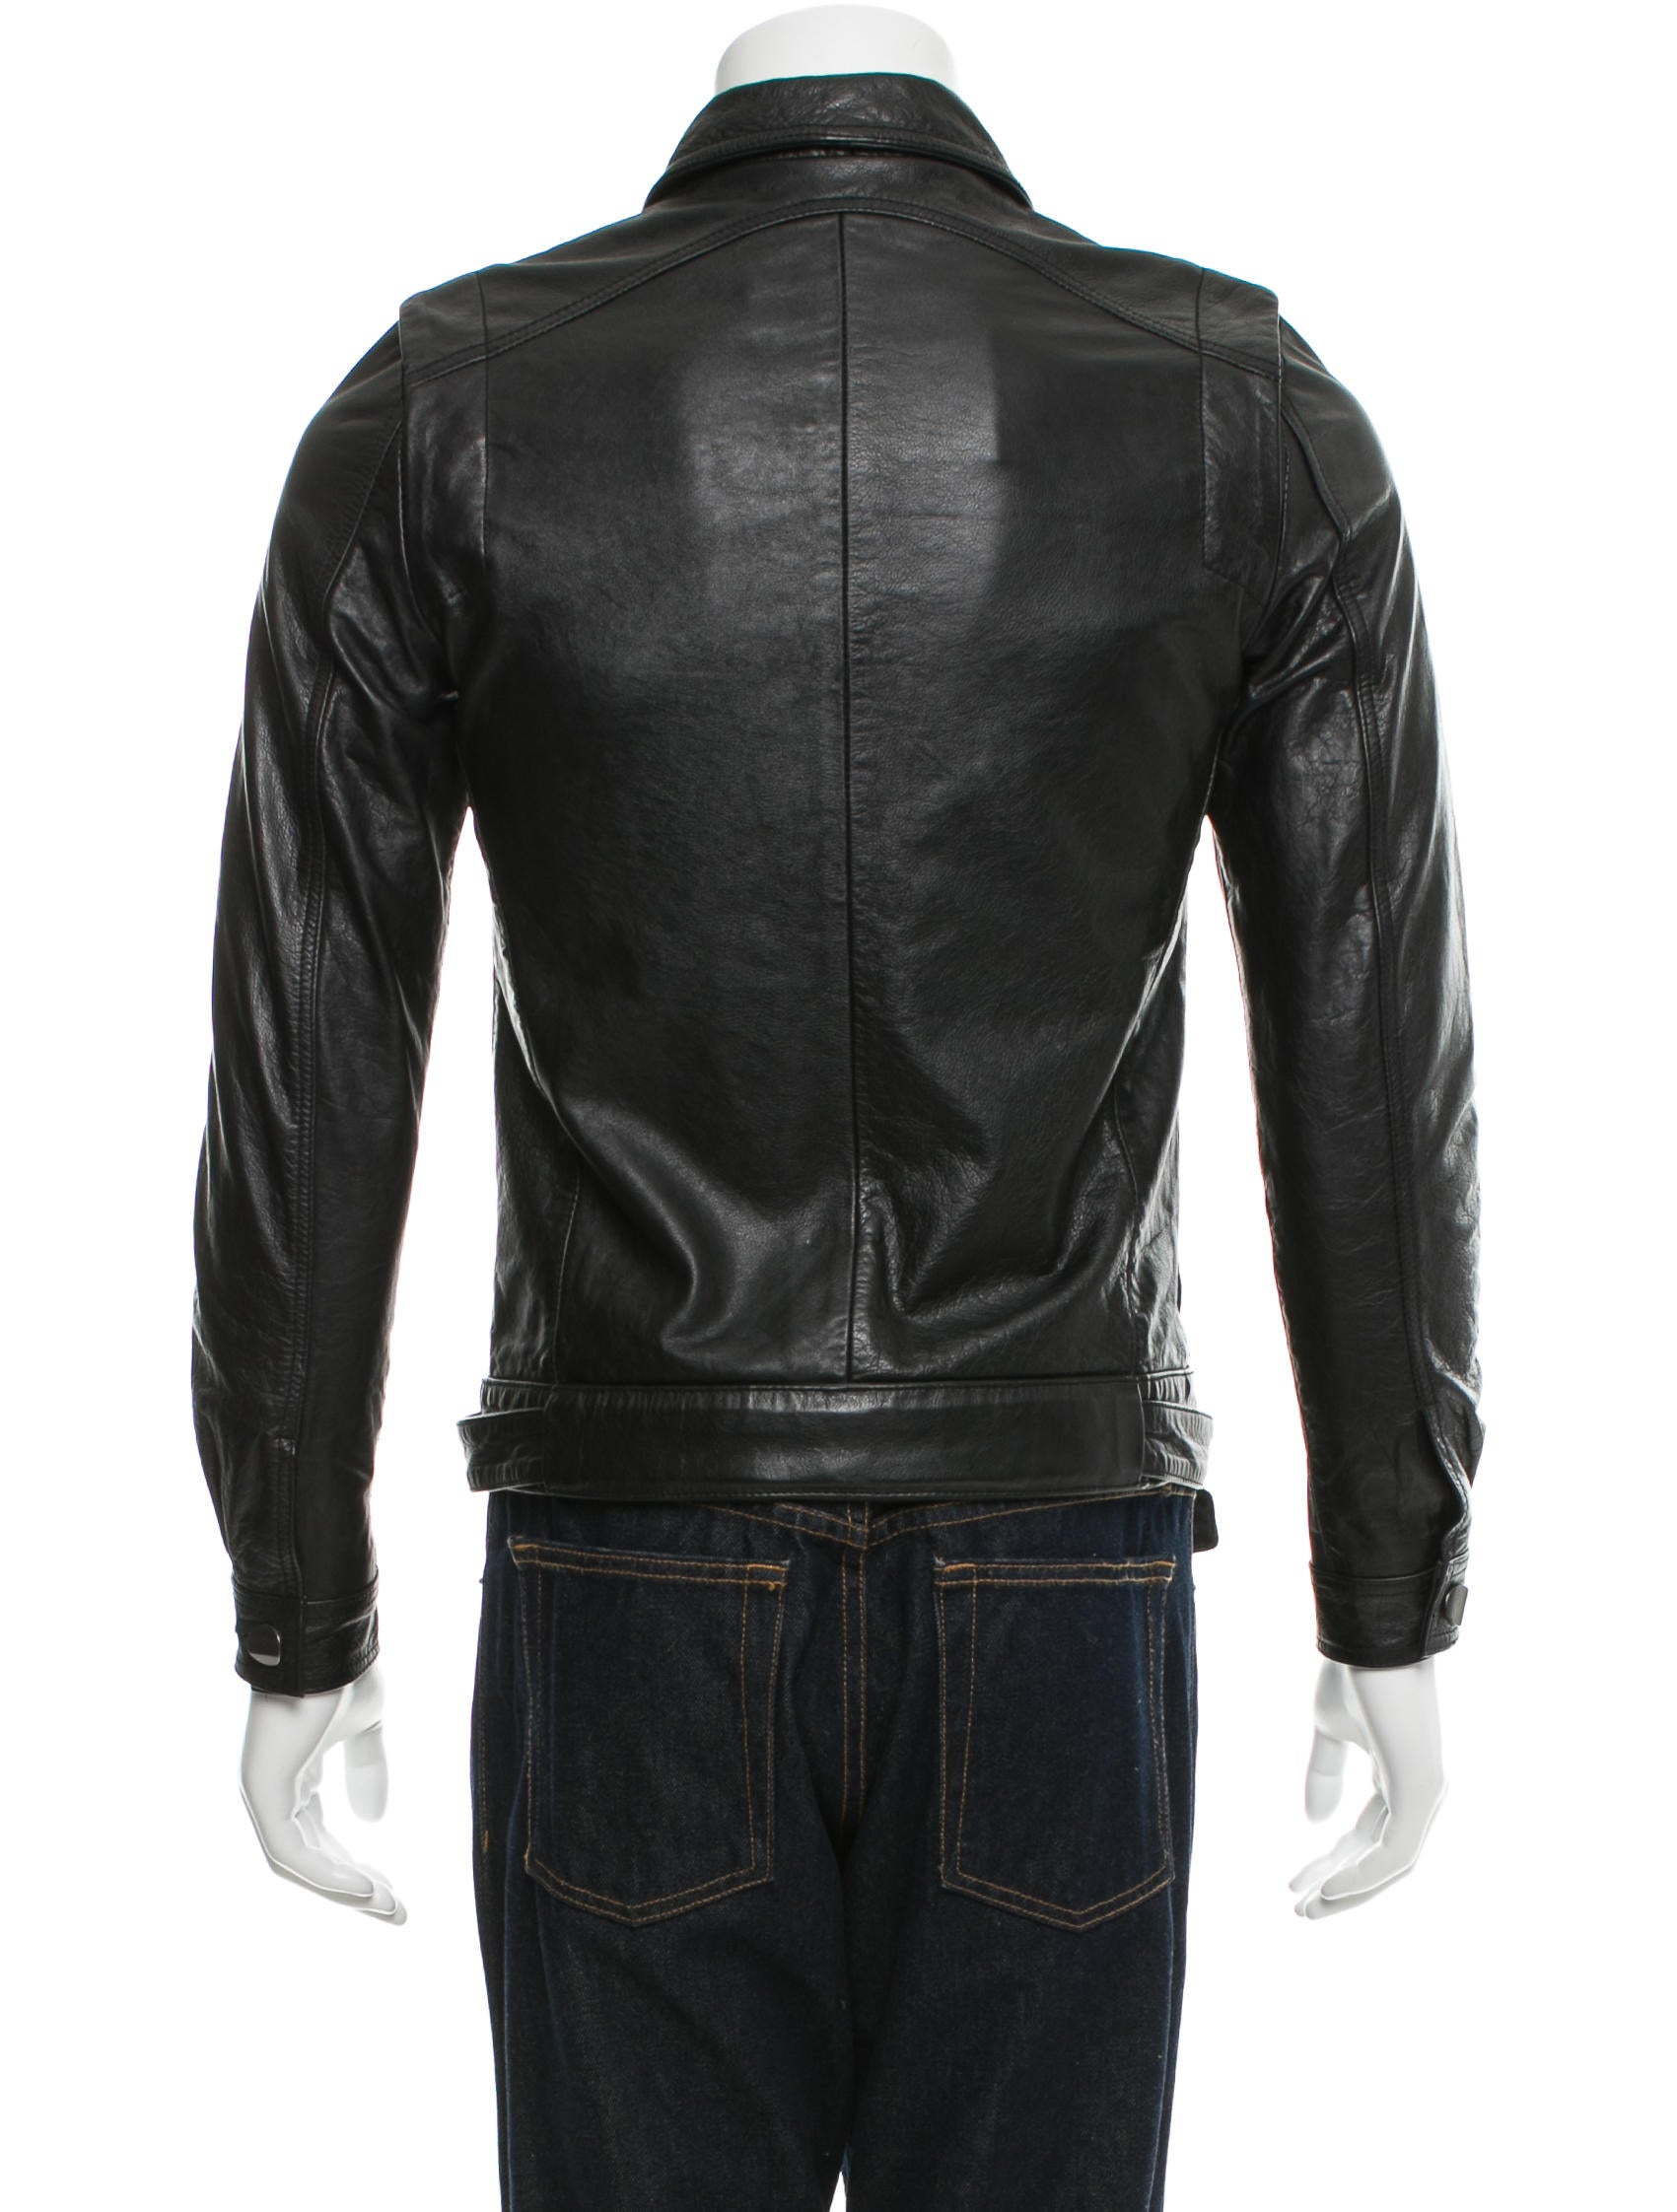 Chapter Belted Leather Jacket - Clothing - WCHAP20004 | The RealReal